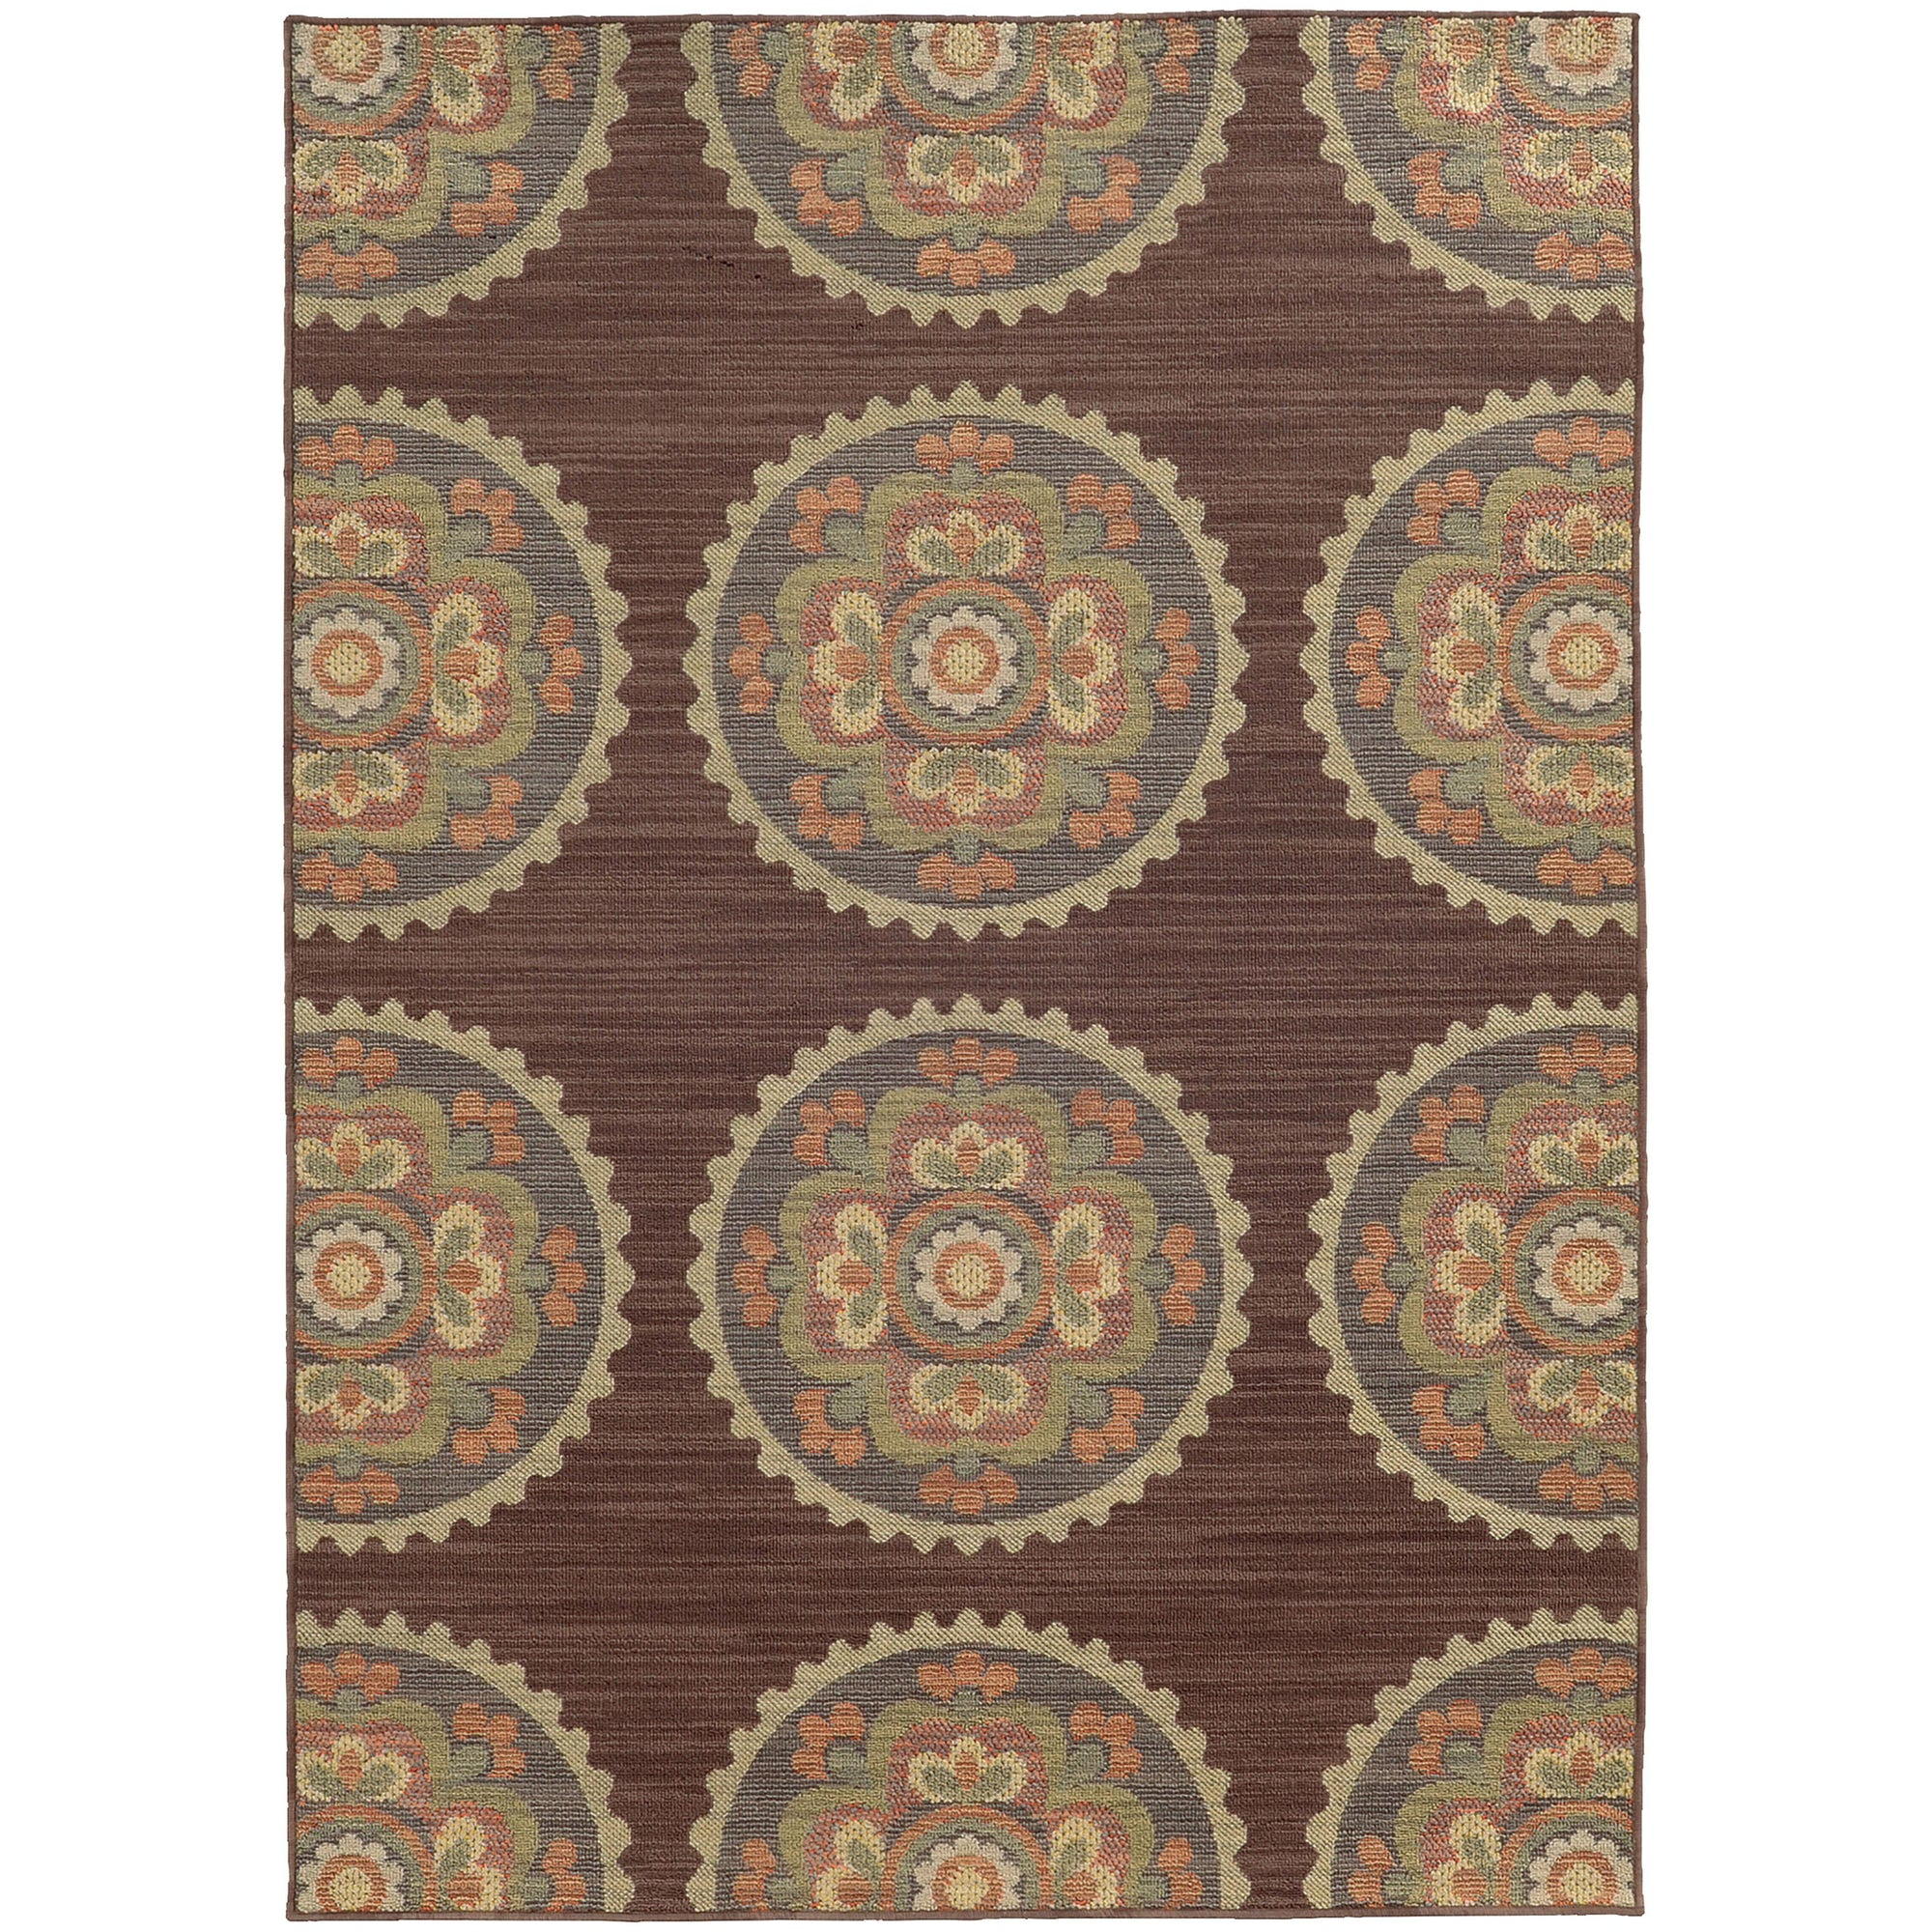 "Tommy Bahama Home Cabana 501m Brown/Multi-Area Rug-Tommy Bahama Home-3'10"" X 5' 5""-The Rug Truck"